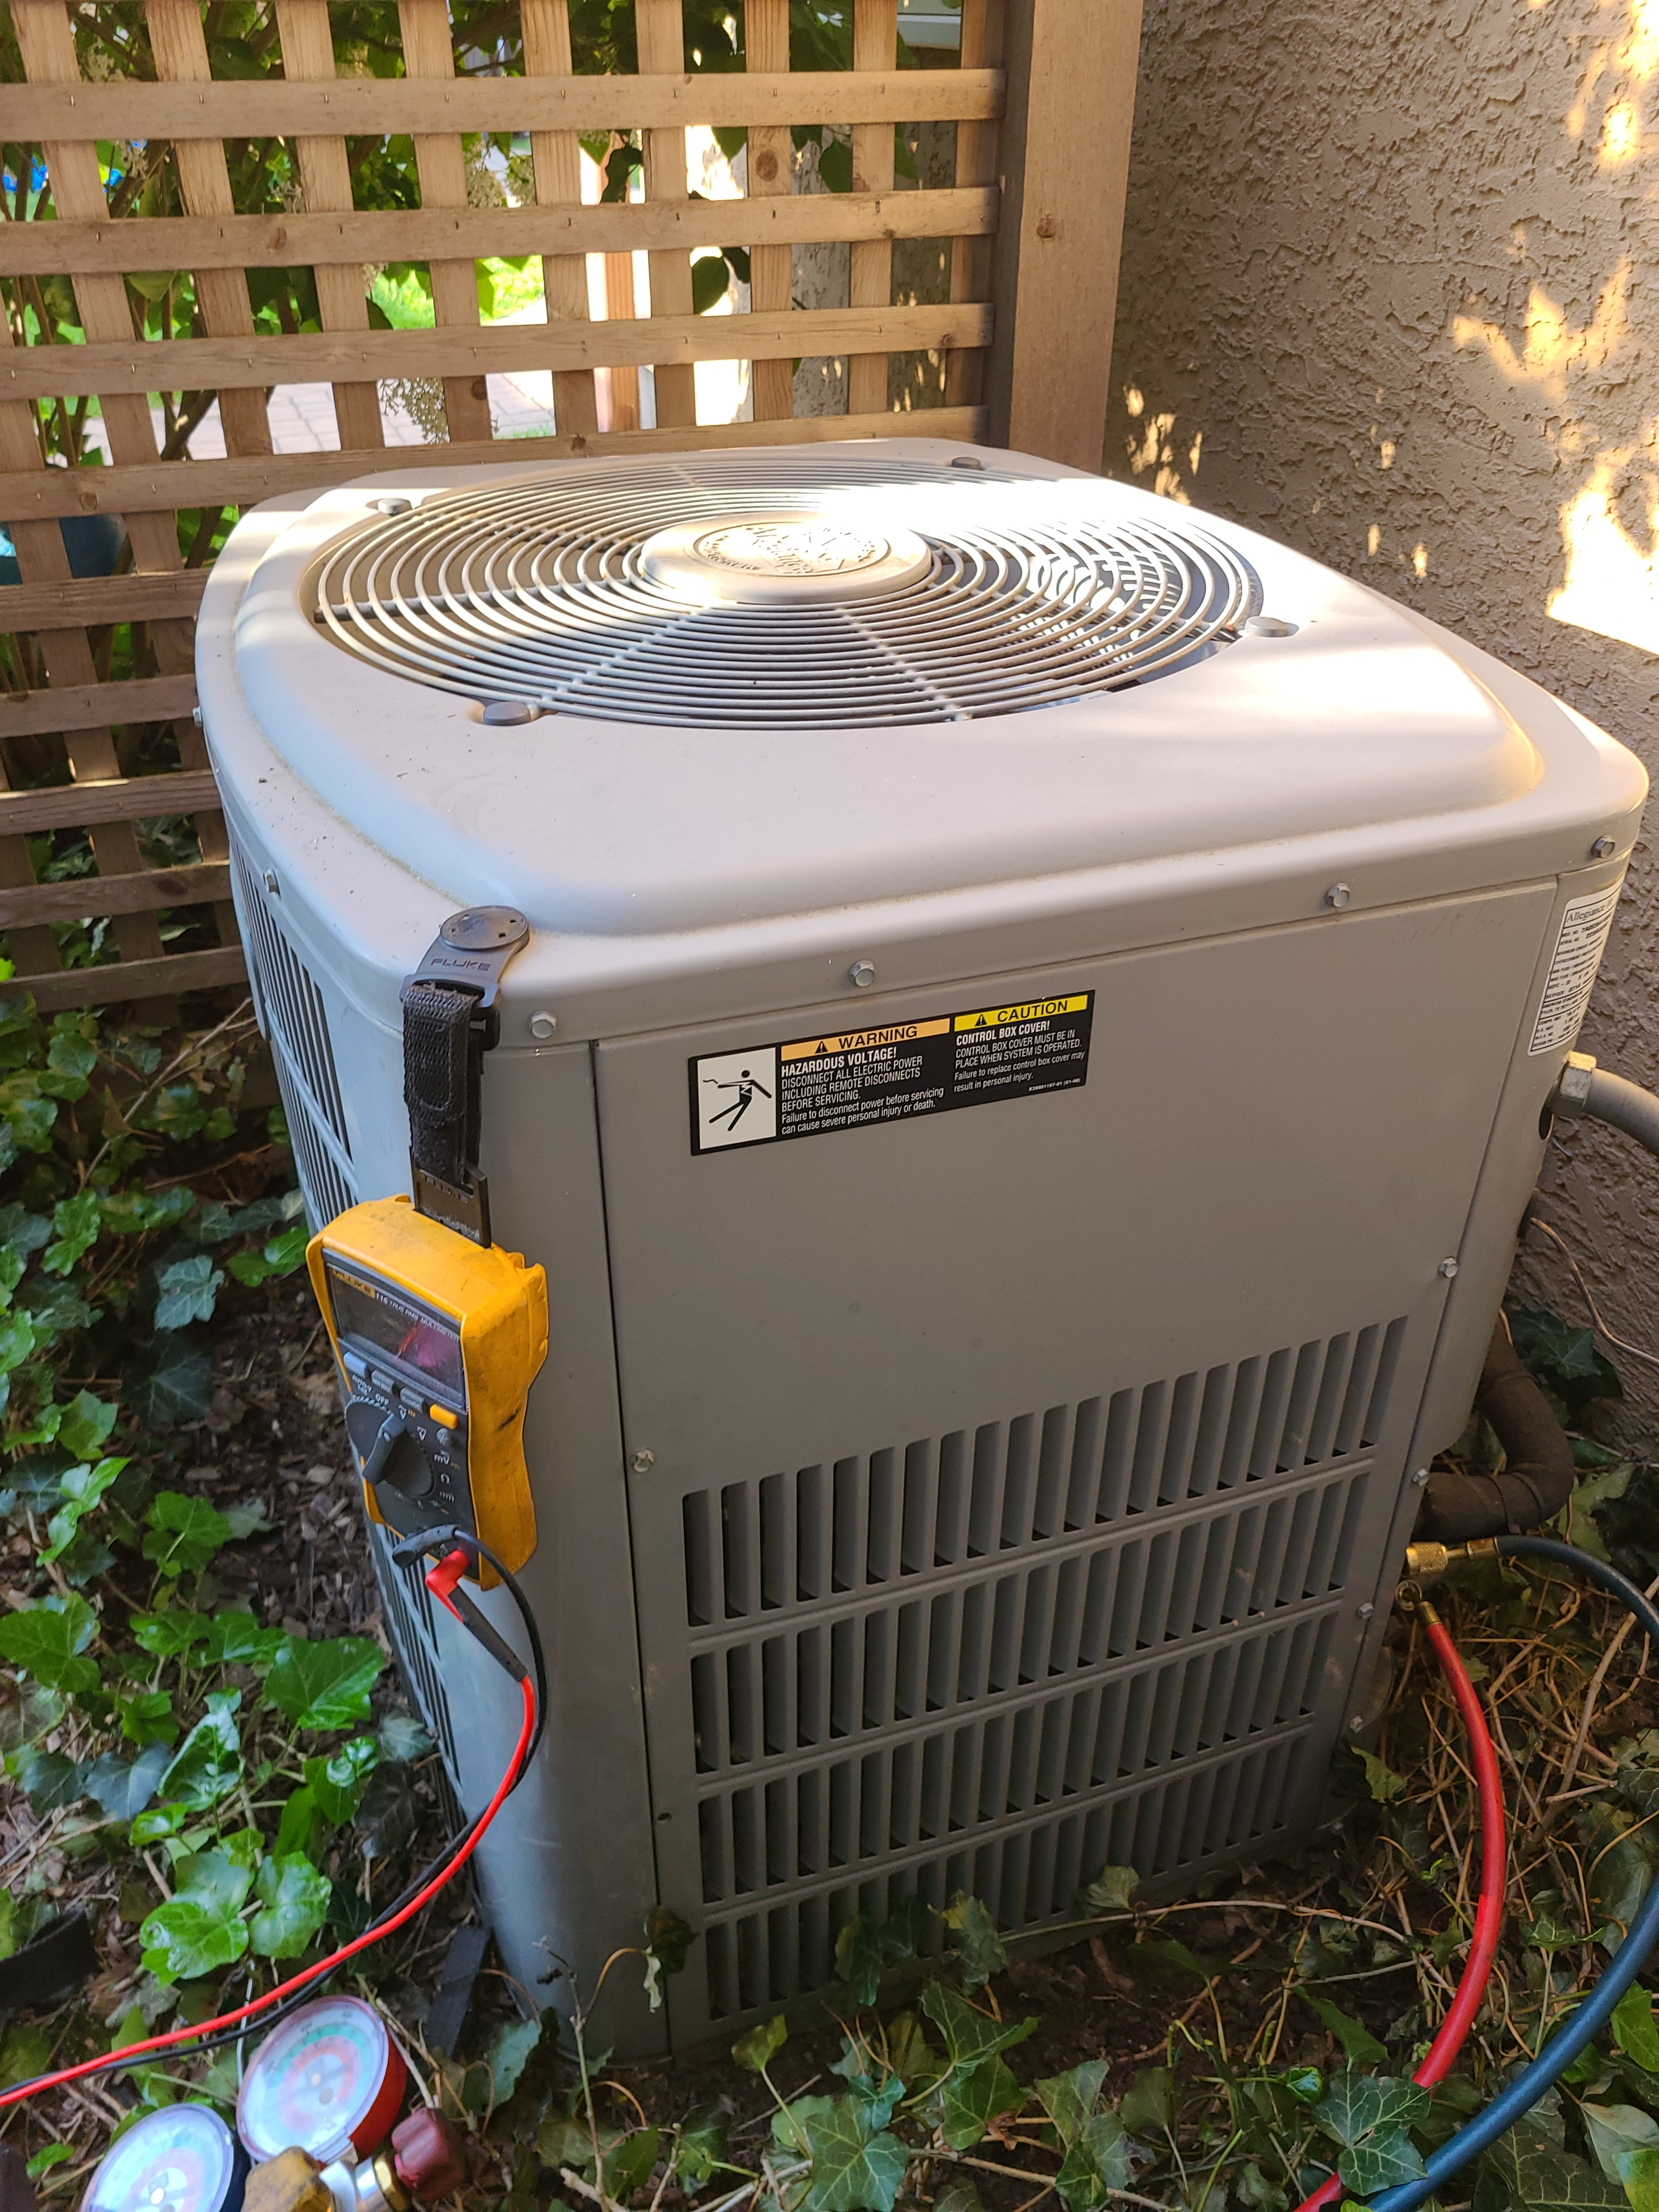 American Standard ac no cooling issue fixes and system operation restored.